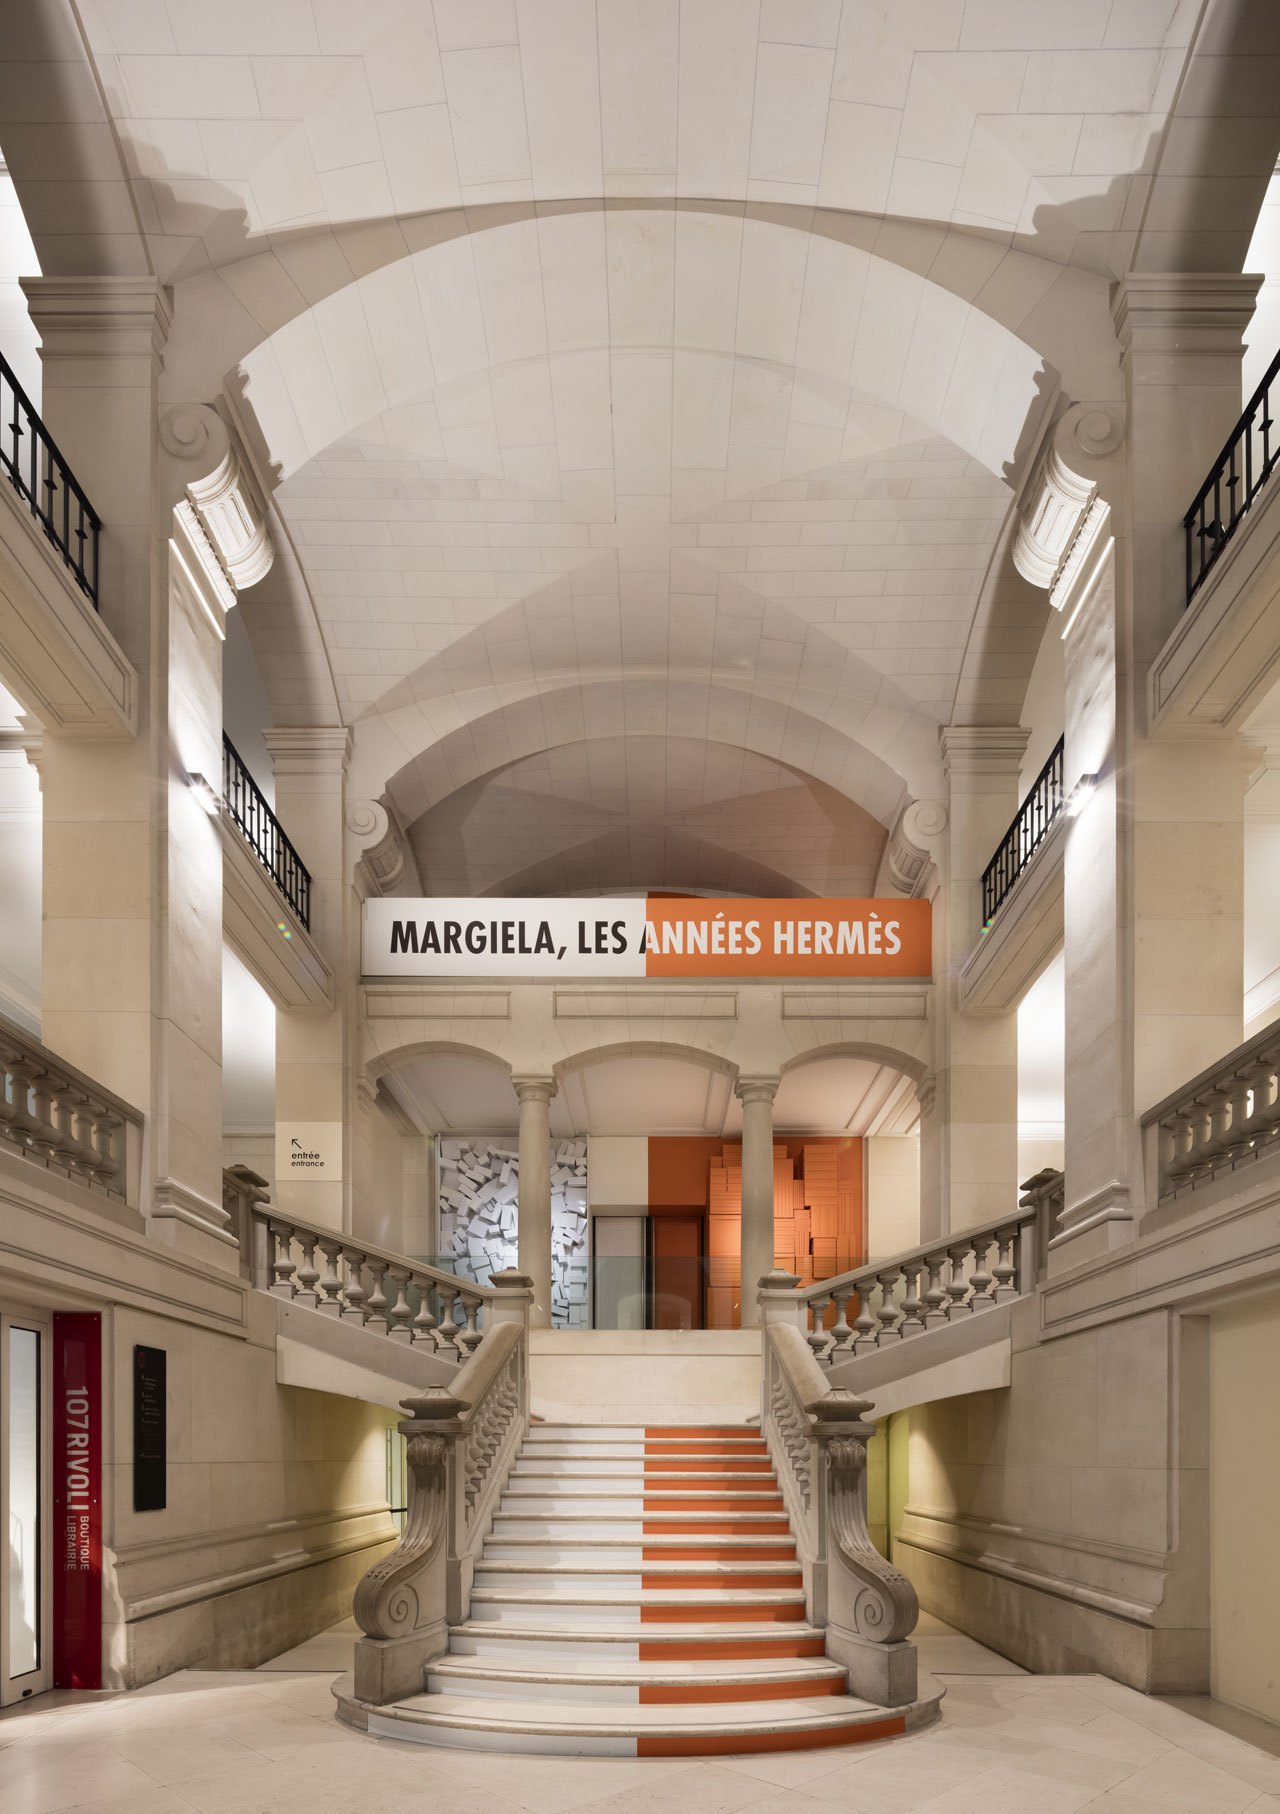 """Margiela, les années Hermès"" installation view at the Musée des Arts Décoratifs in Paris. The exhibition will be on view till 2 September 2018. Photo by Luc Boegly."